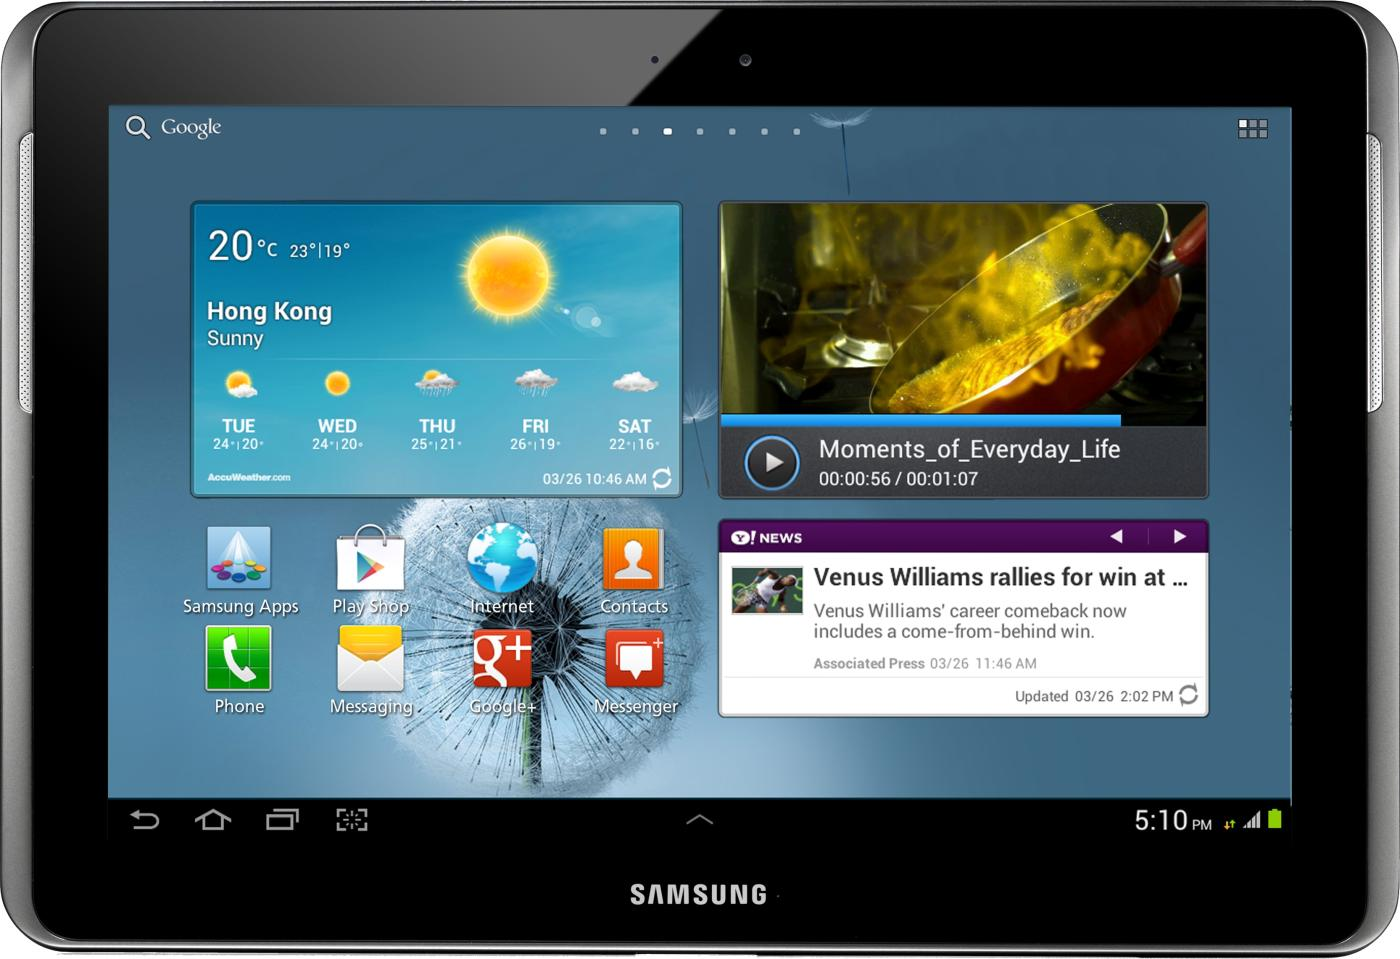 How to root Samsung Galaxy Tab 2 7.0 P3100 on Android 4.0.3 ICS